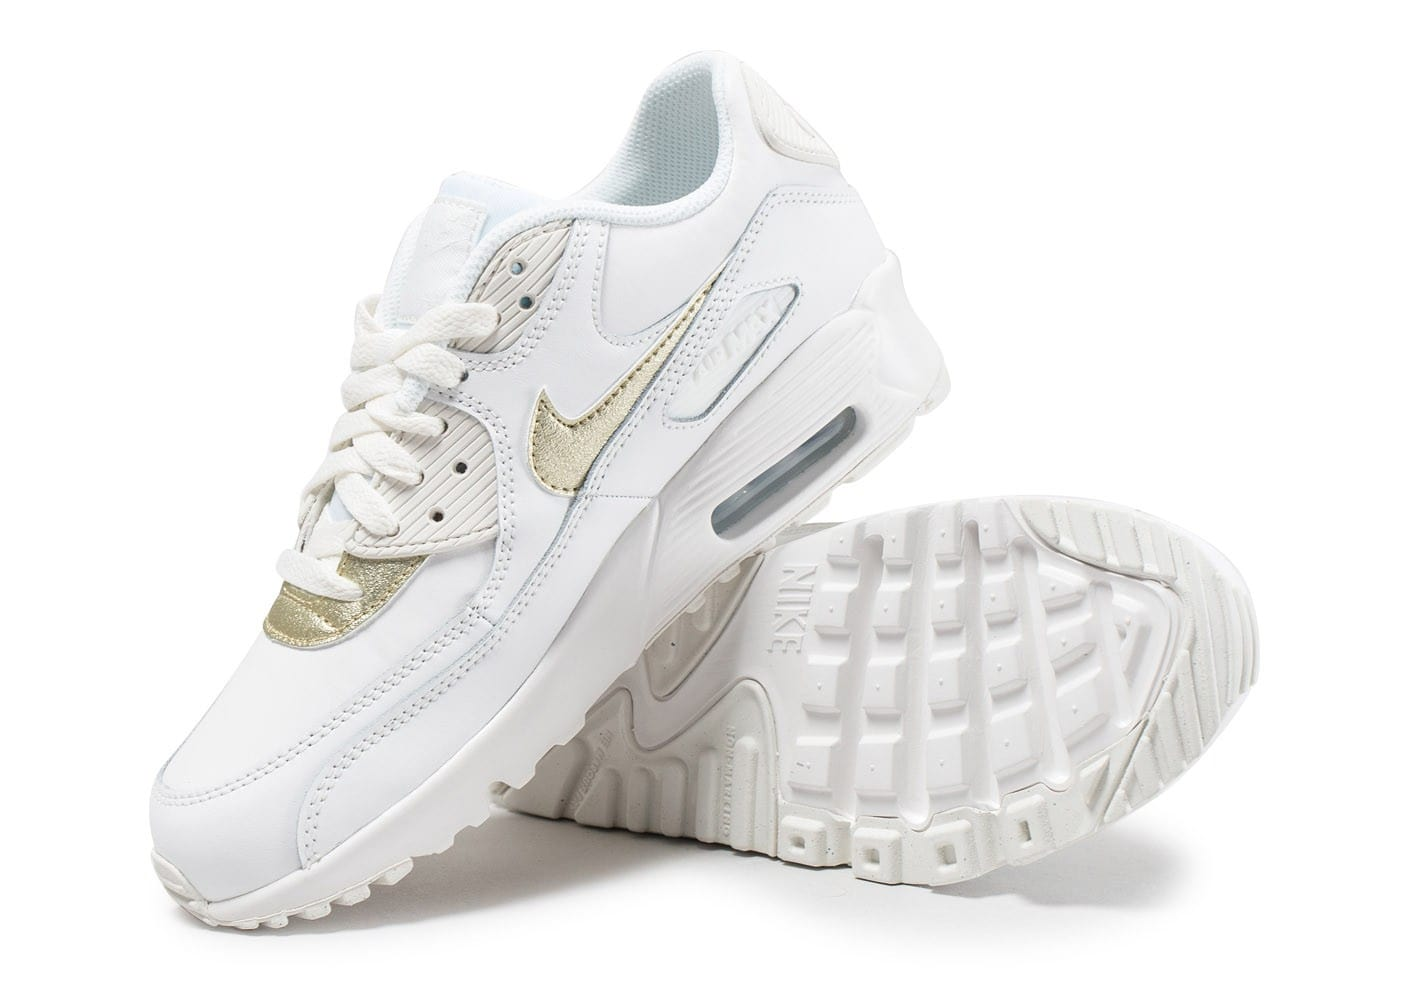 ... Chaussures Nike Air Max 90 Leather Junior blanche et or vue avant ...